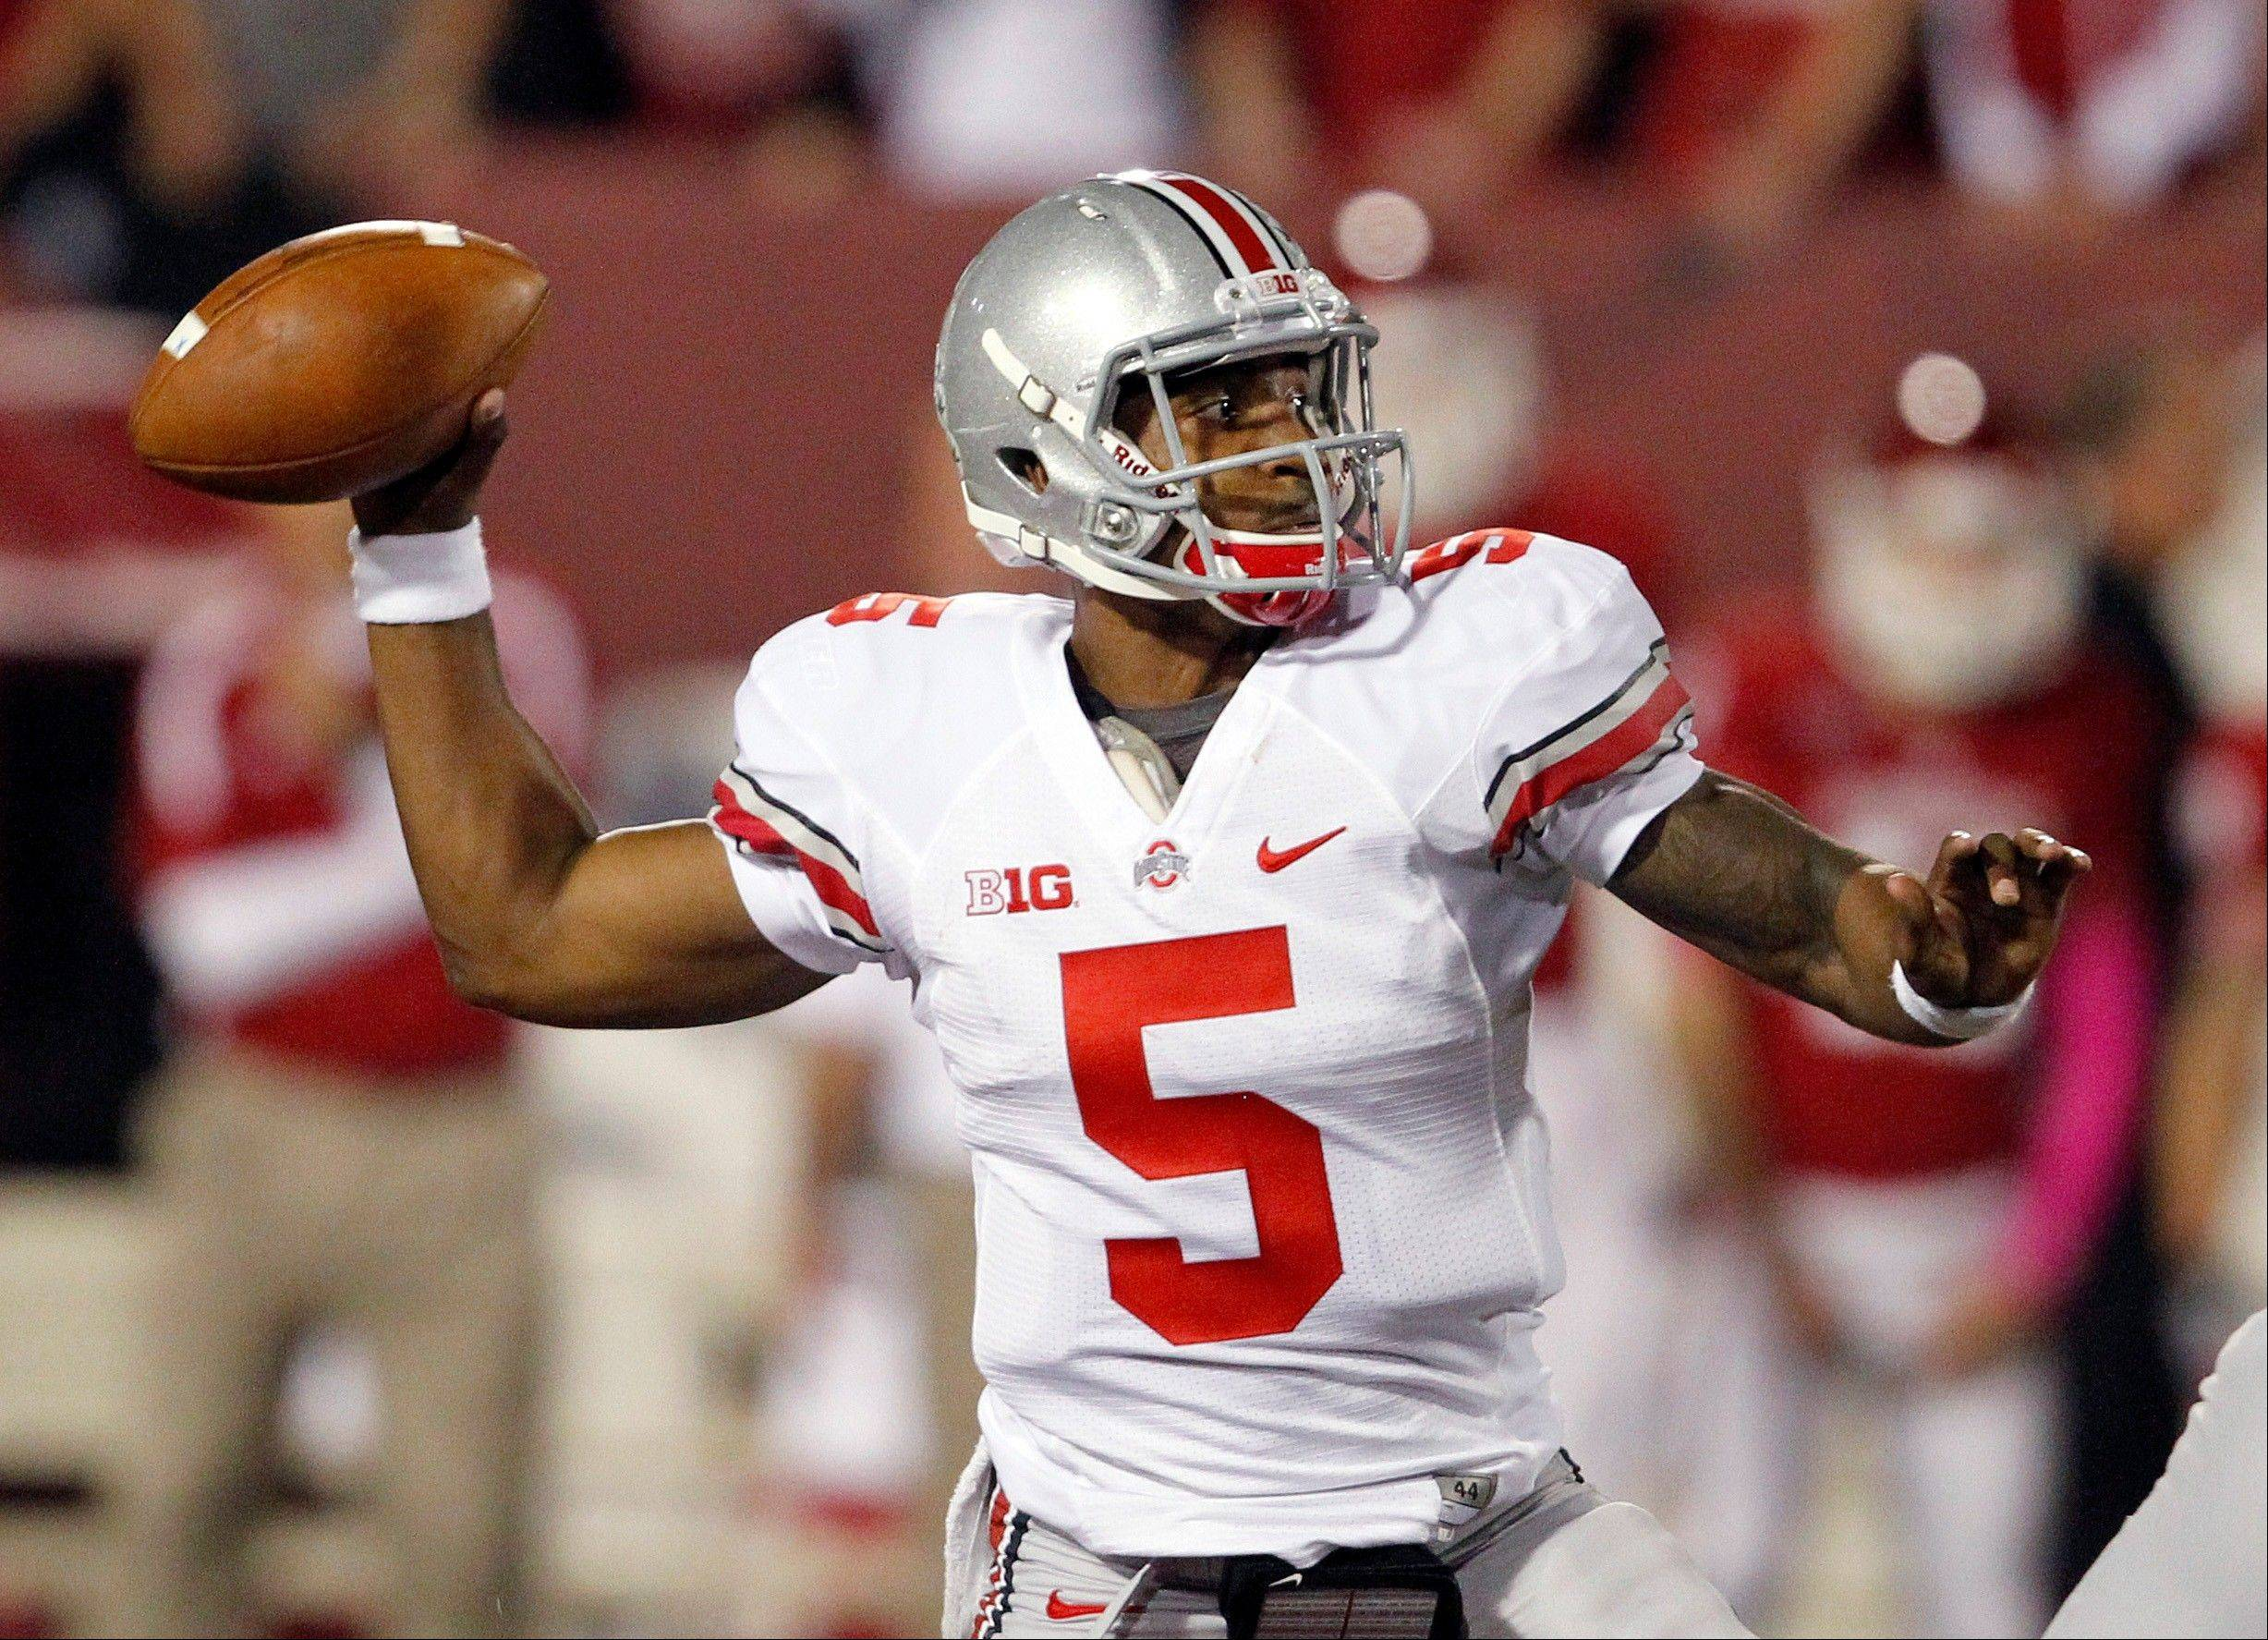 Ohio State quarterback Braxton Miller throws during the first half against Indiana in an NCAA college football game in Bloomington, Ind., Saturday, Oct. 13, 2012.